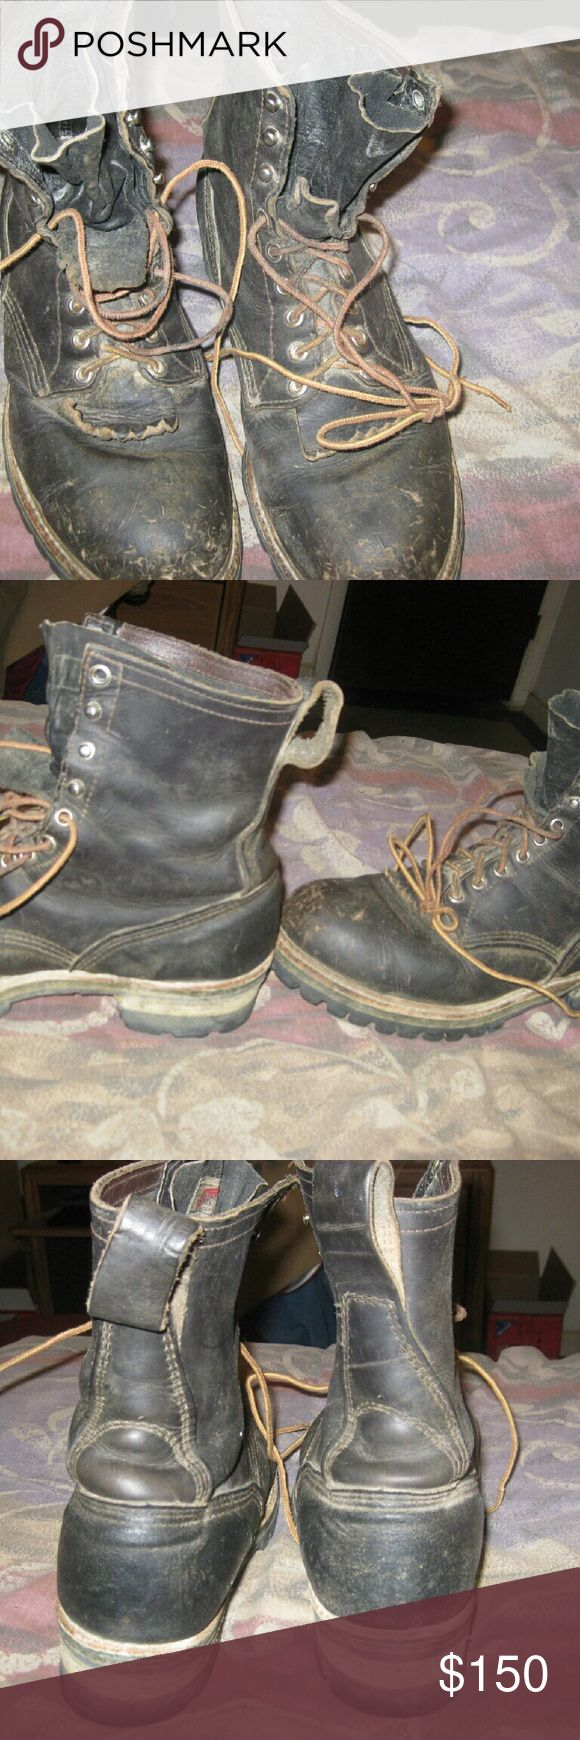 vintage steel toed red wing logger boots 10D good shape  vintage red wing steel toed logger boots  10 D size  shows wear in pics ? a little leather treatment and a little cleaning up will make them look good  ?Check pictures to ensure this is what your looking for.?  I work hard to accurately represent the product.?  If you have any questions feel free to ask. All feedback is encouraged and appreciated. Red Wing Shoes Shoes Boots